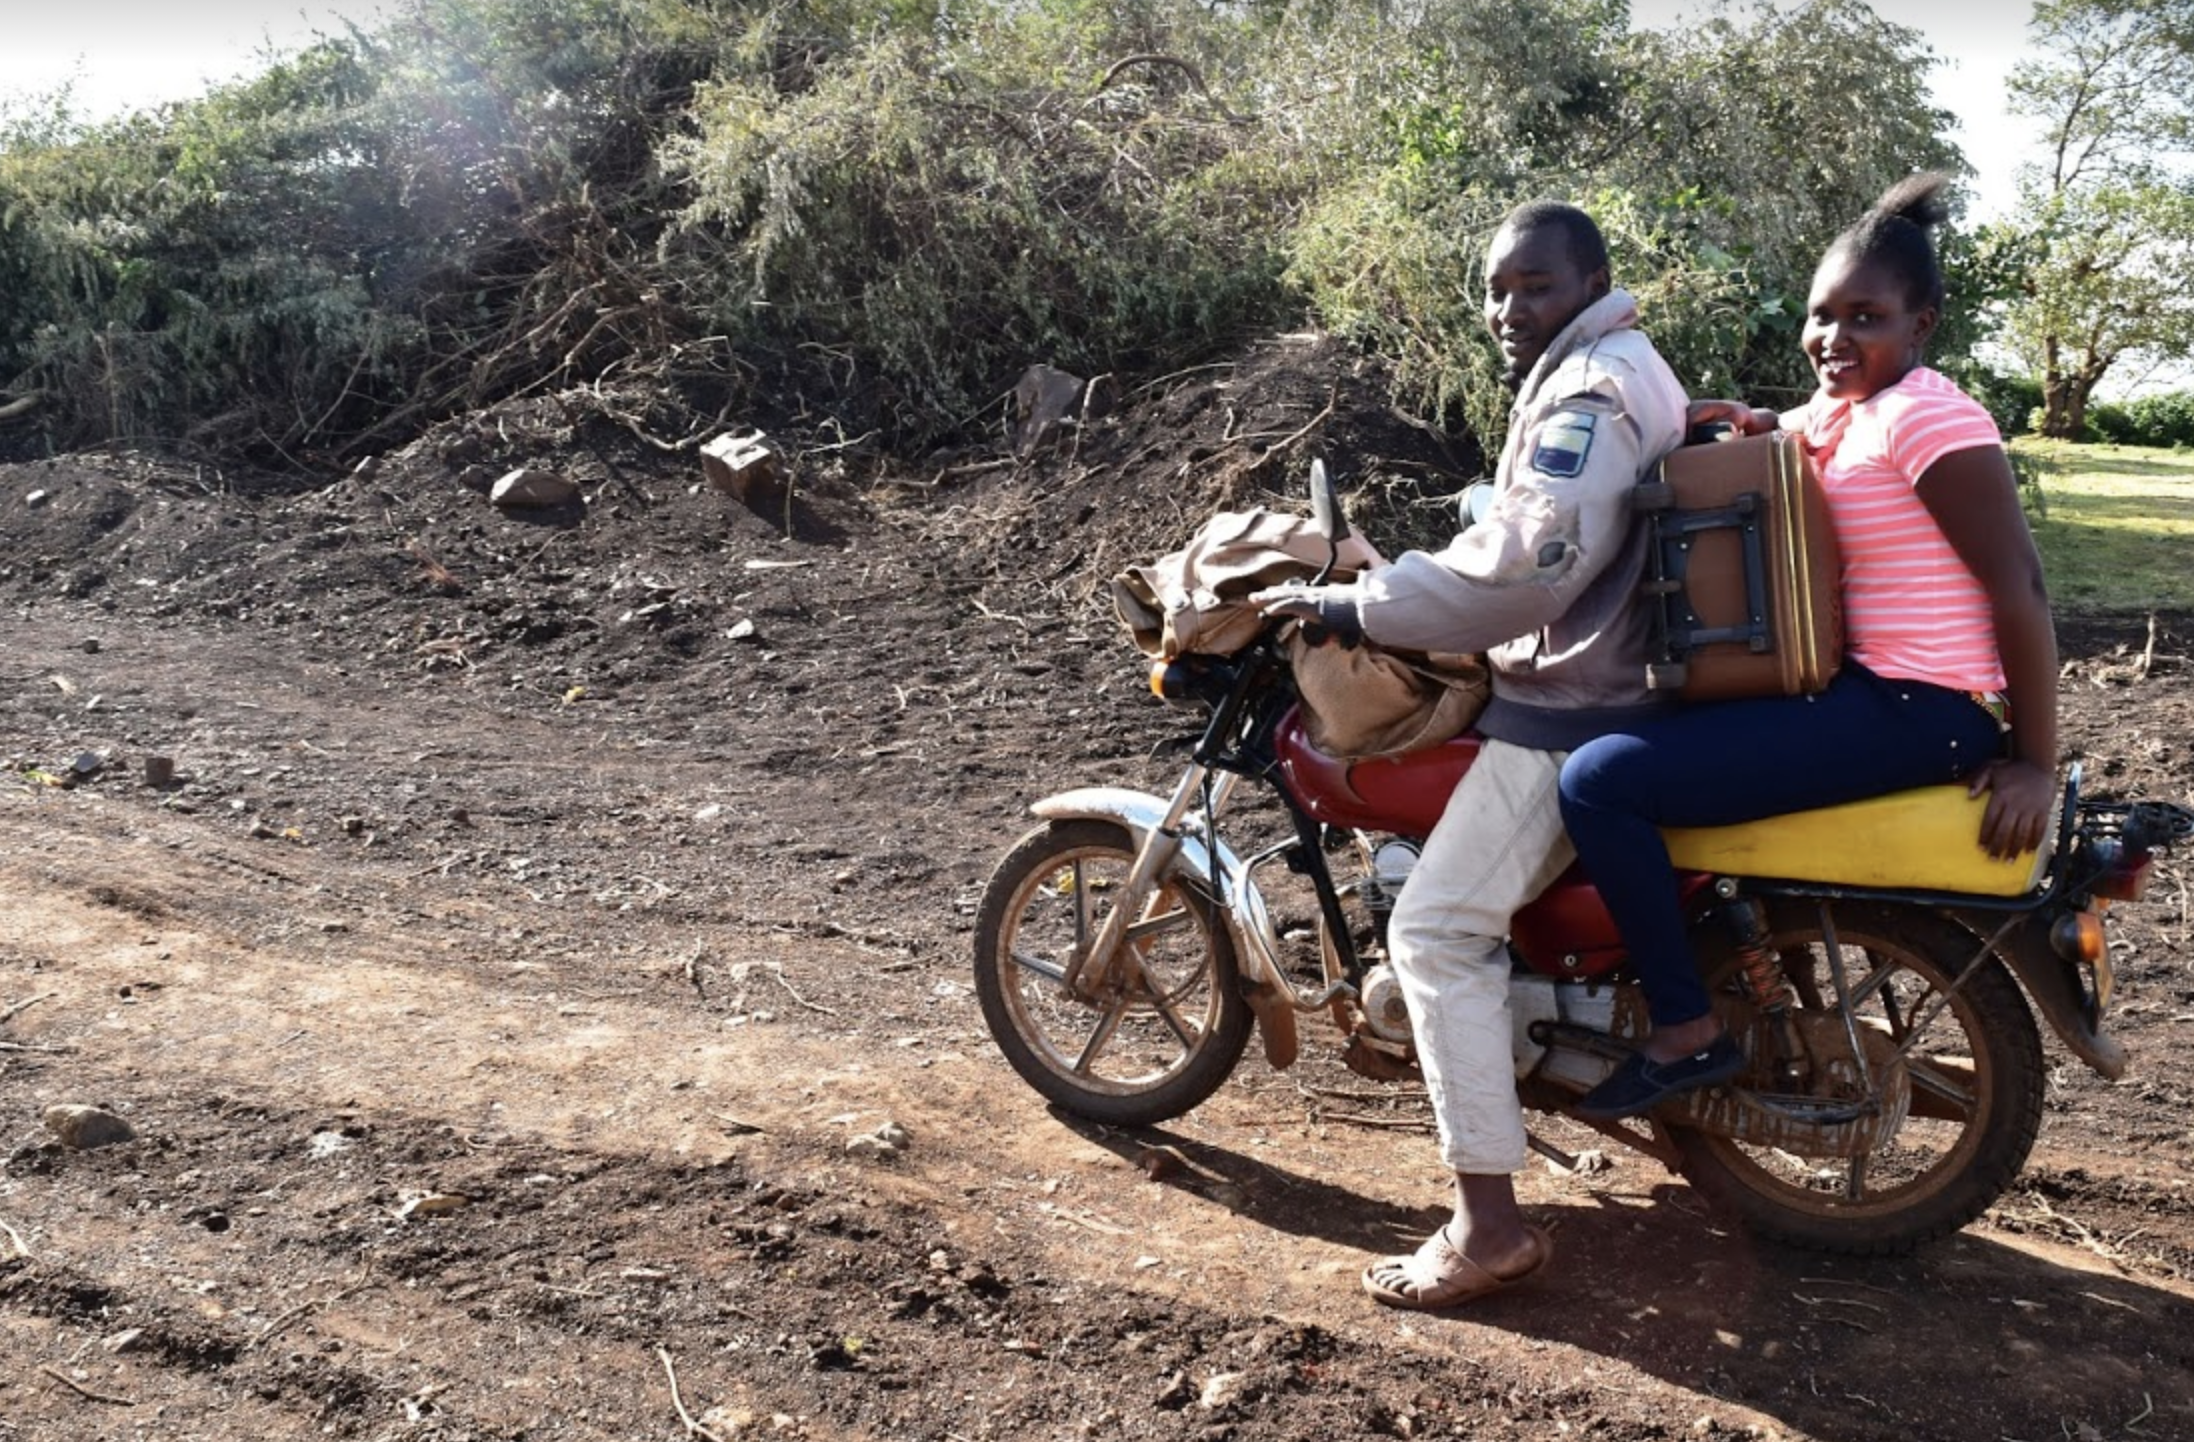 Linet takes a motorbike from her home, beginning the long journey to Australia